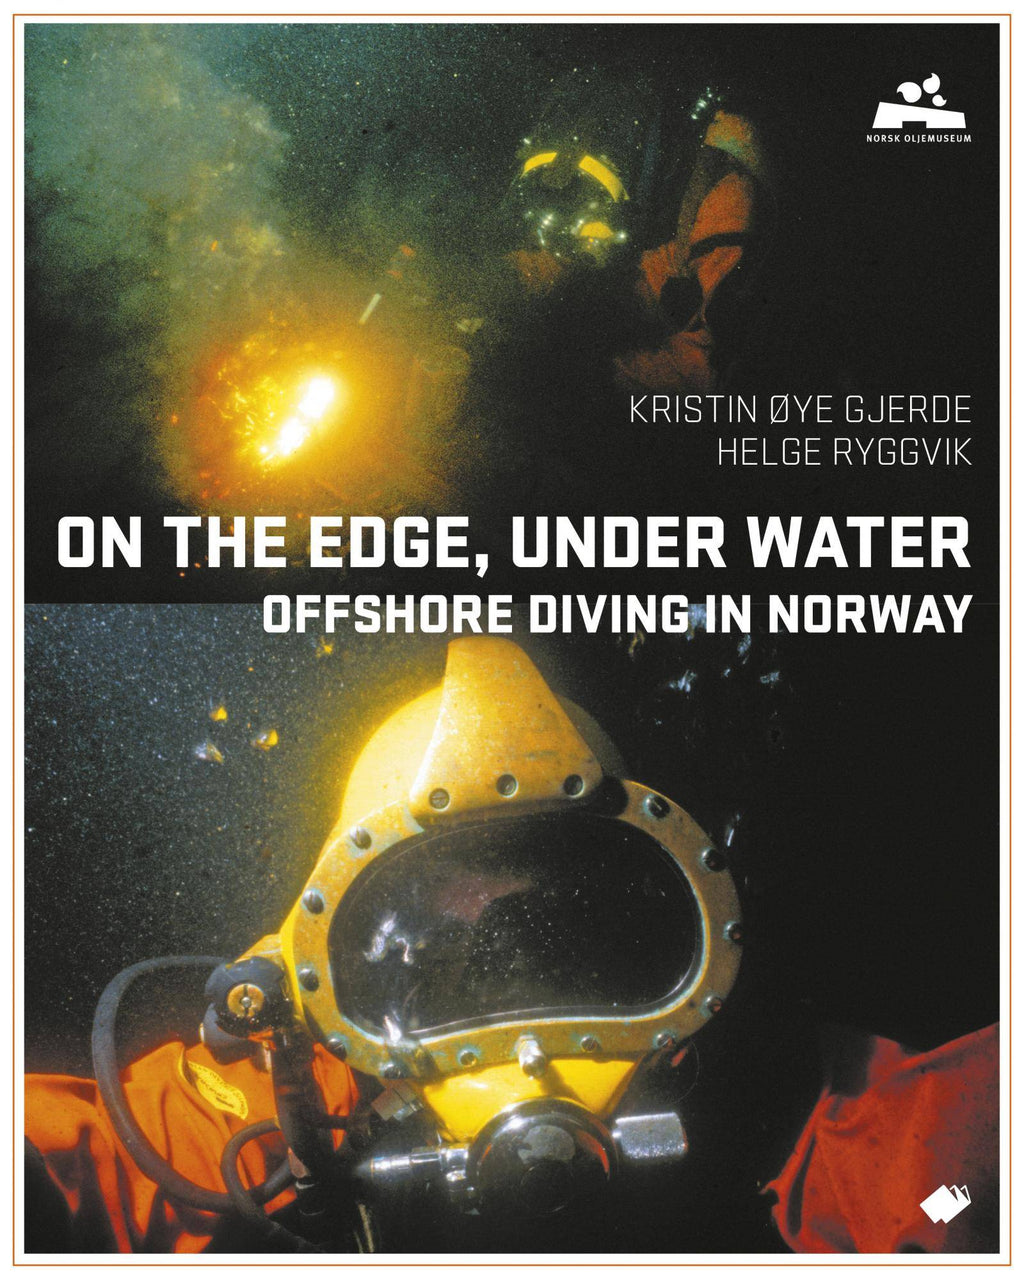 On the edge, under water : offshore diving in Norway